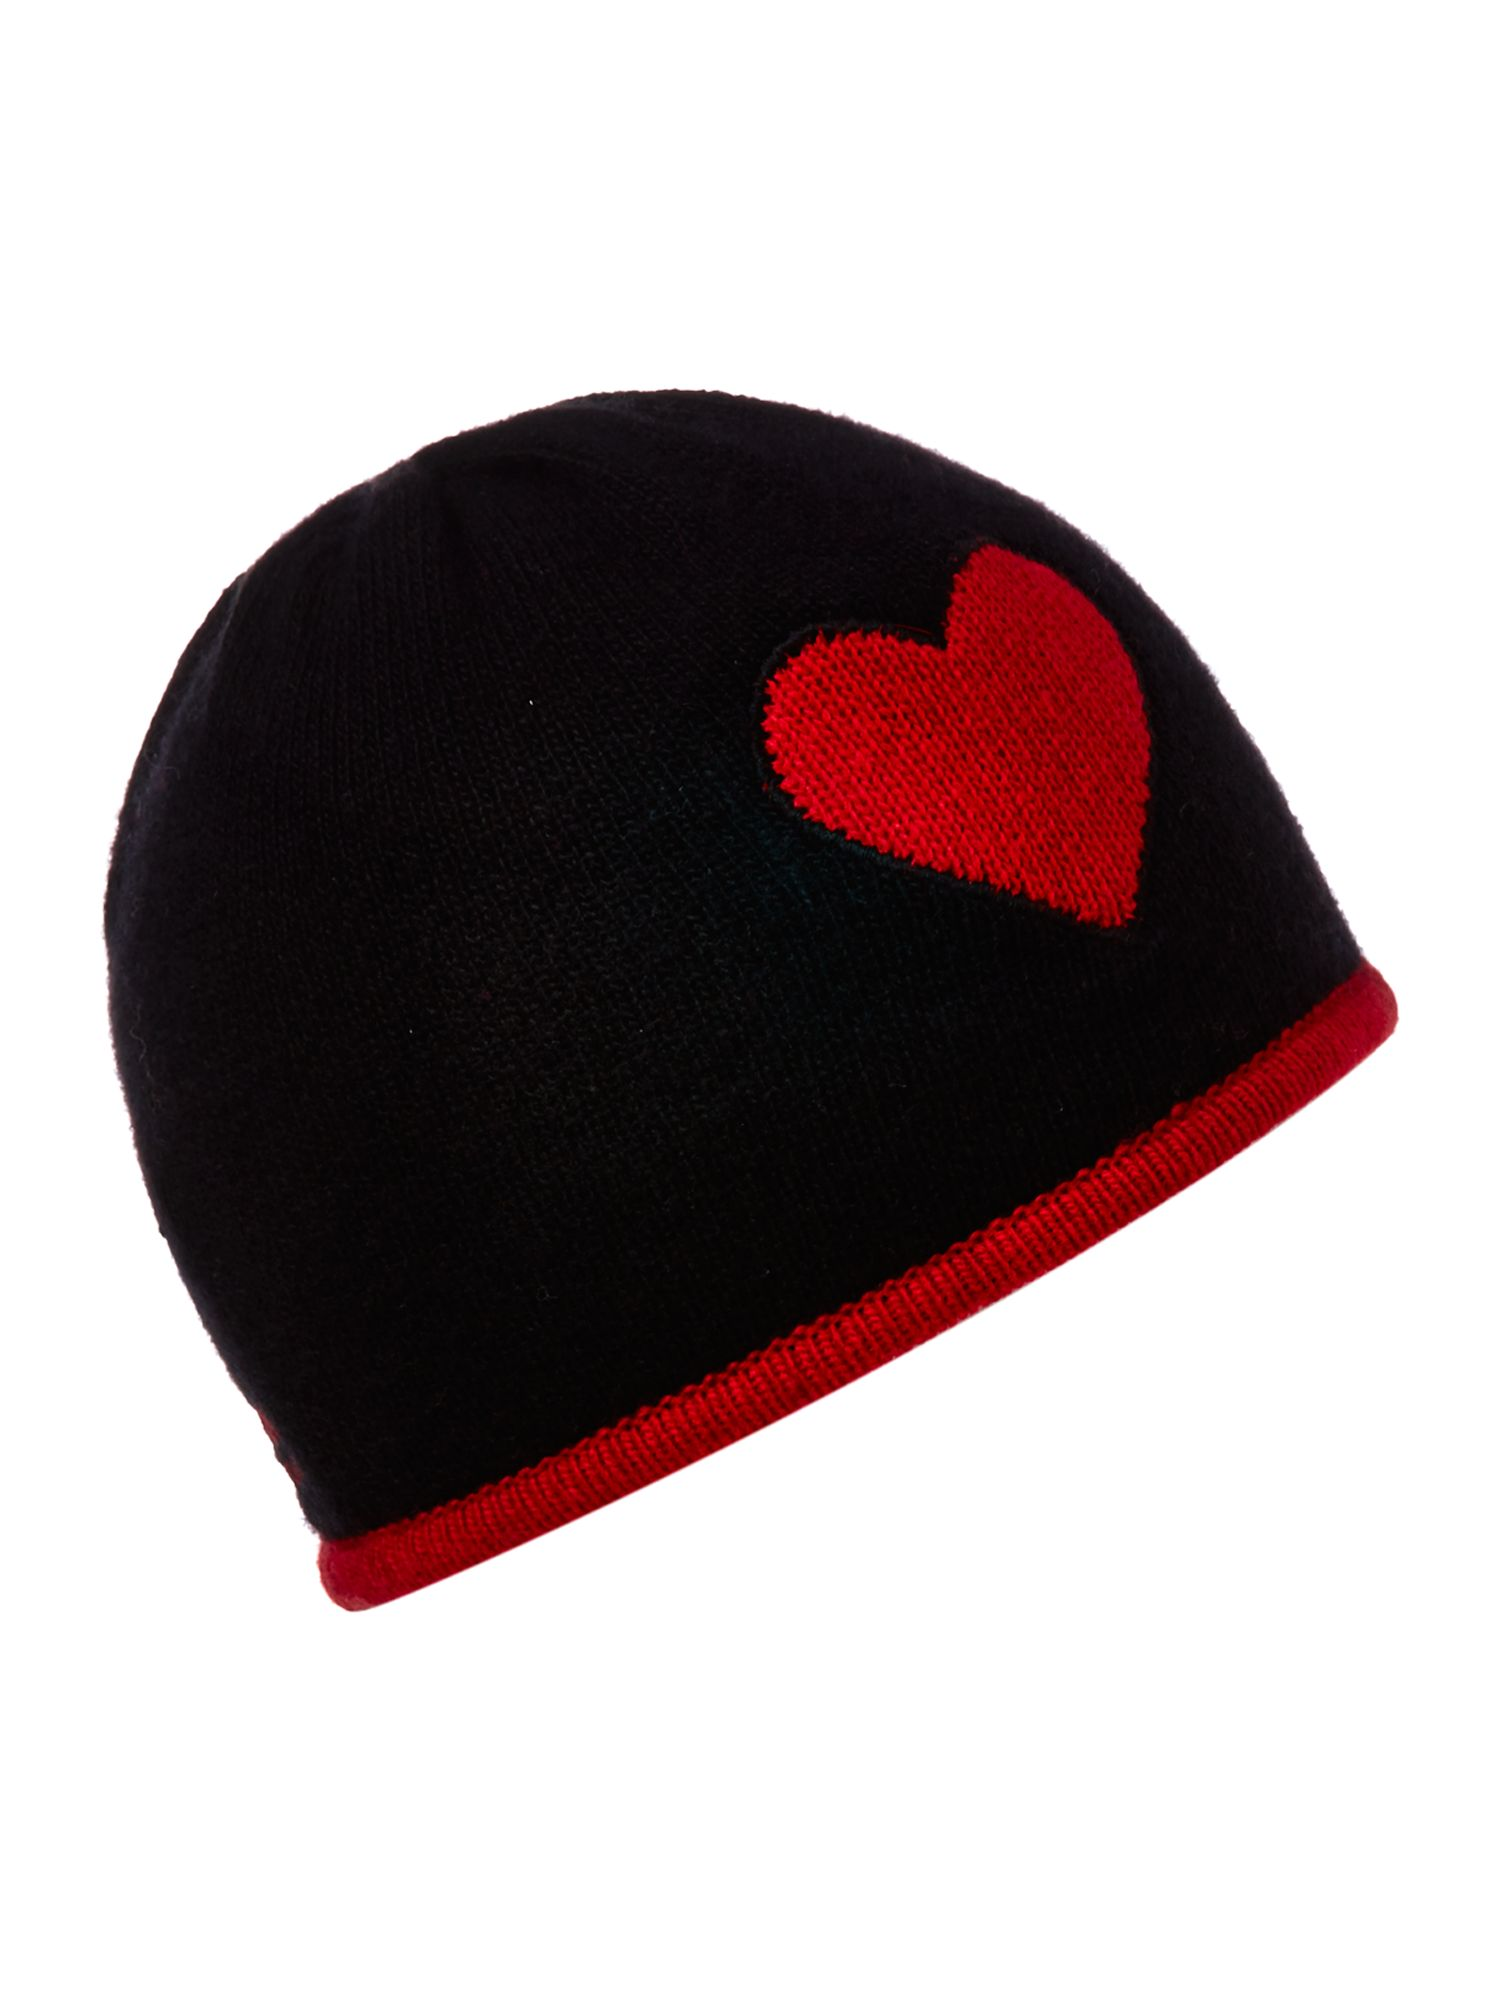 Knitted beanie with heart design